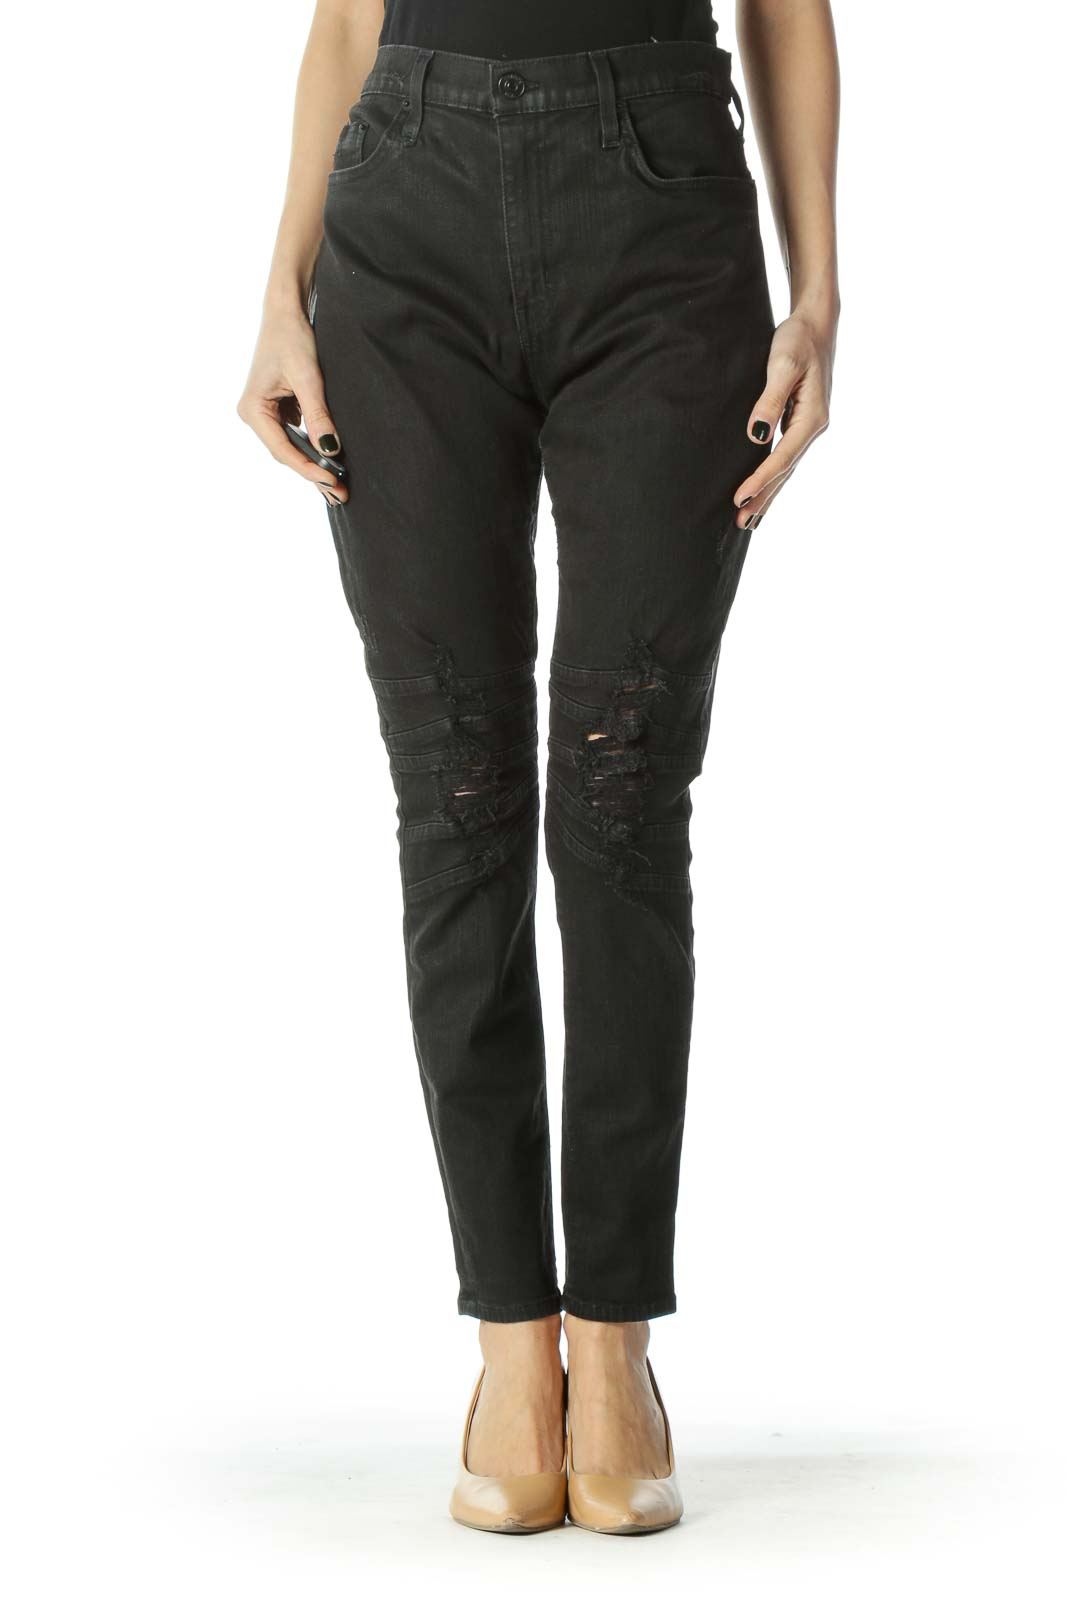 Black Distressed Textured Stretch Skinny Jeans